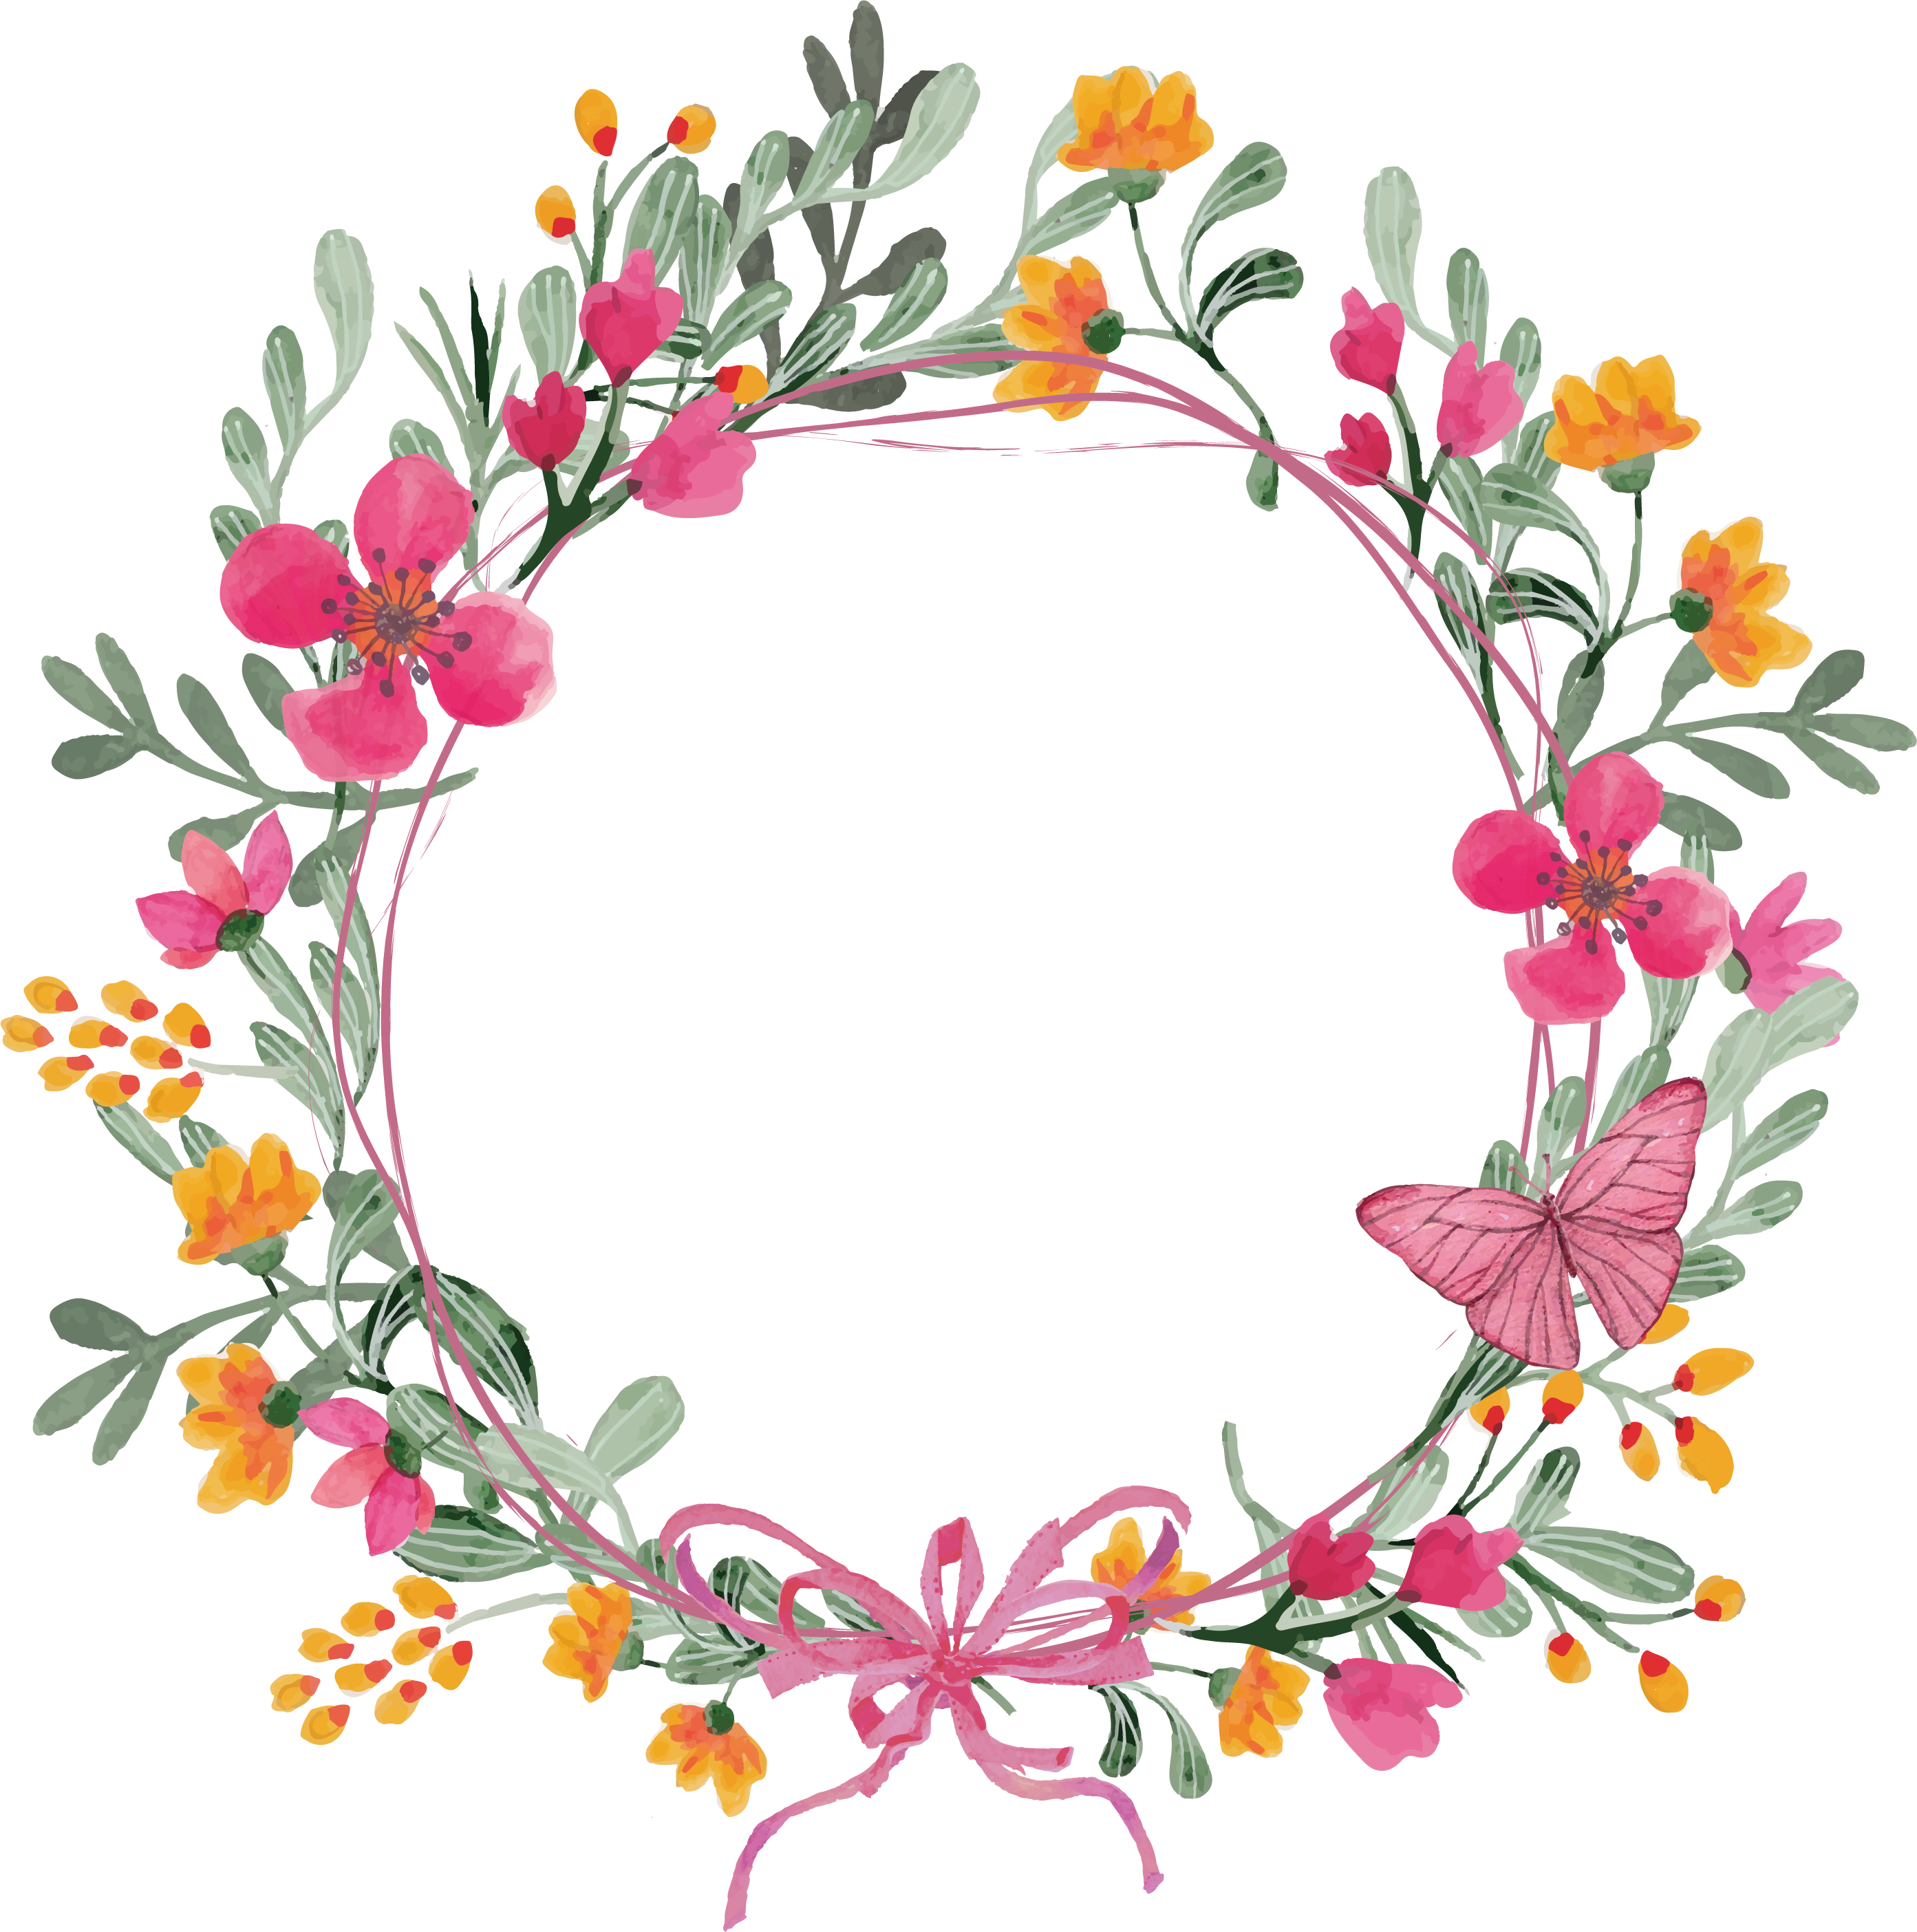 Floral garland png. Flower pink butterfly wreath